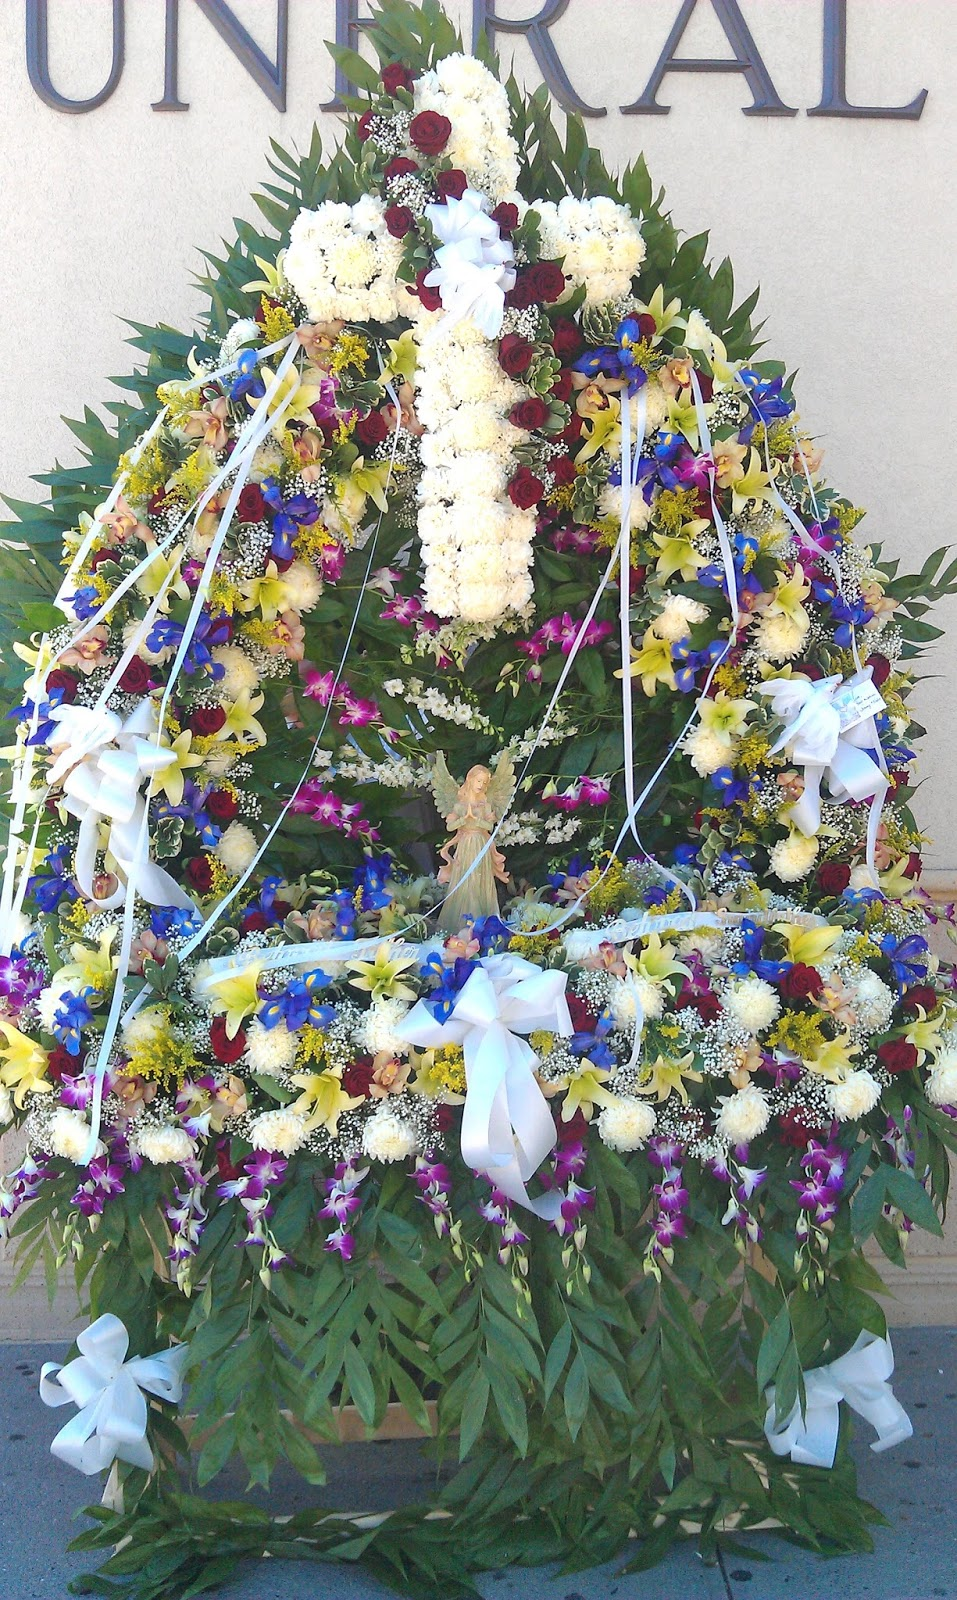 Glendale florist funeral designs the gates of heaven symbolize your loved ones arrival at their final resting place prices starting at 700 and up tax and delivery charges not included izmirmasajfo